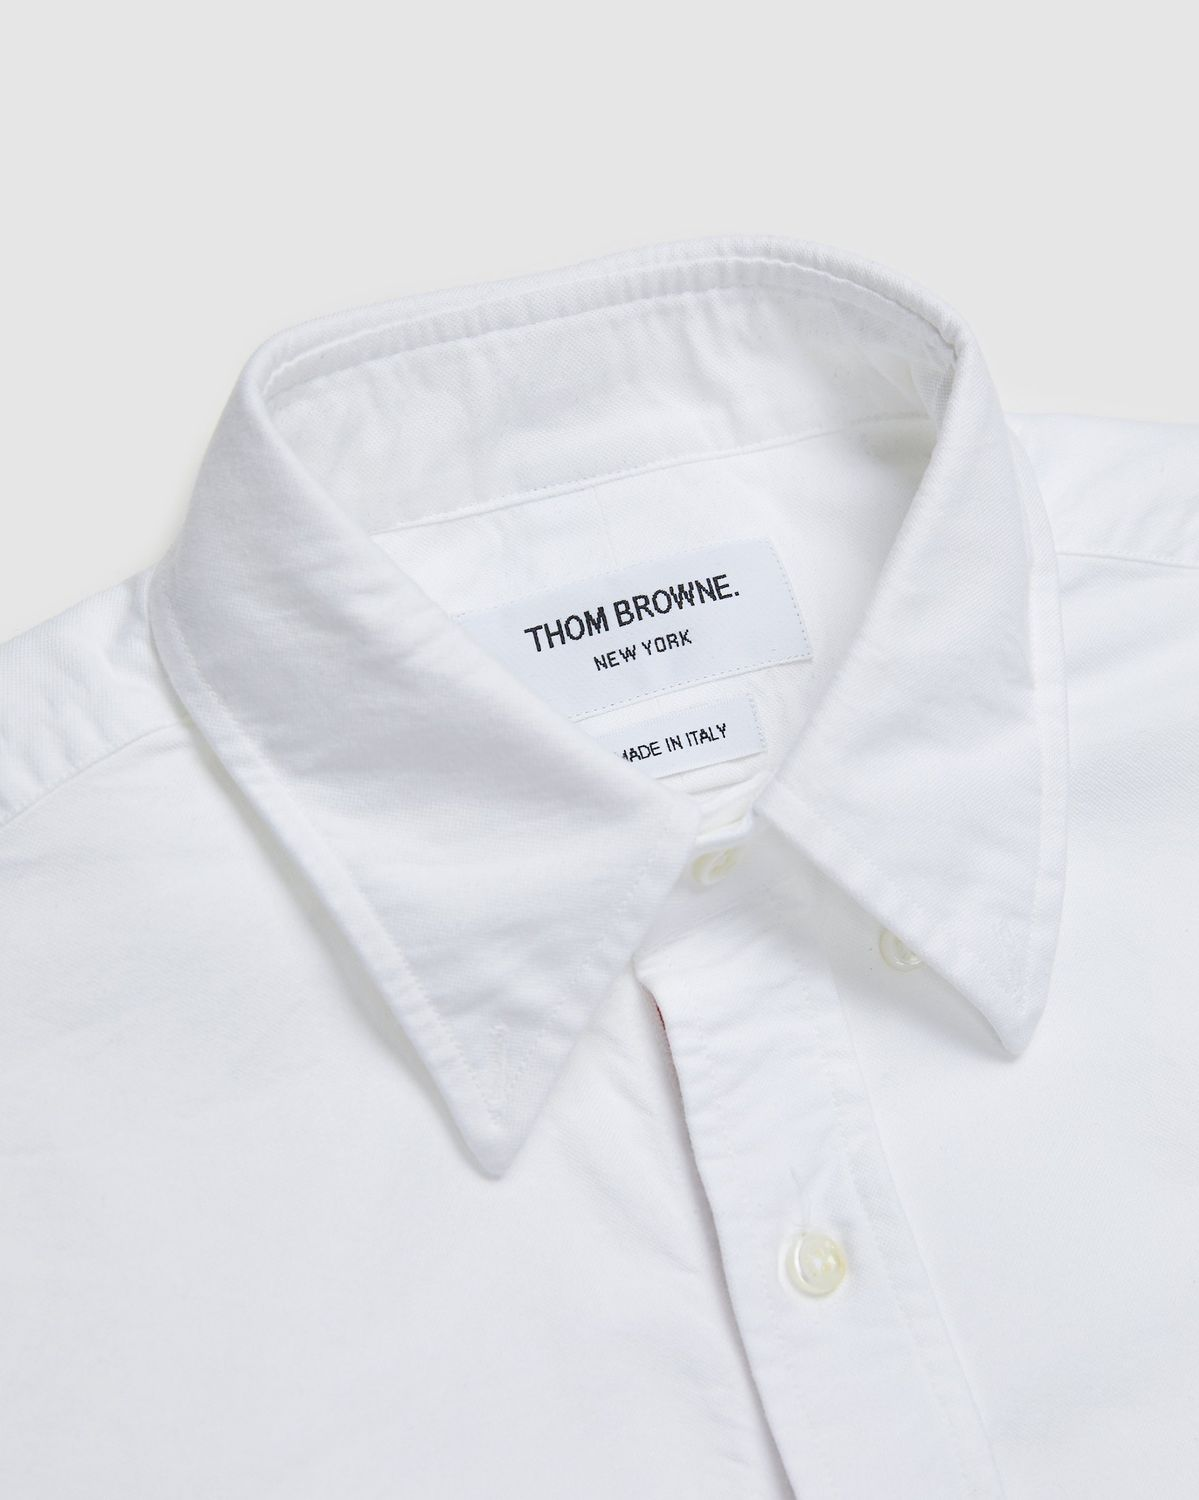 Colette Mon Amour x Thom Browne — White Peace Classic Shirt - Image 3